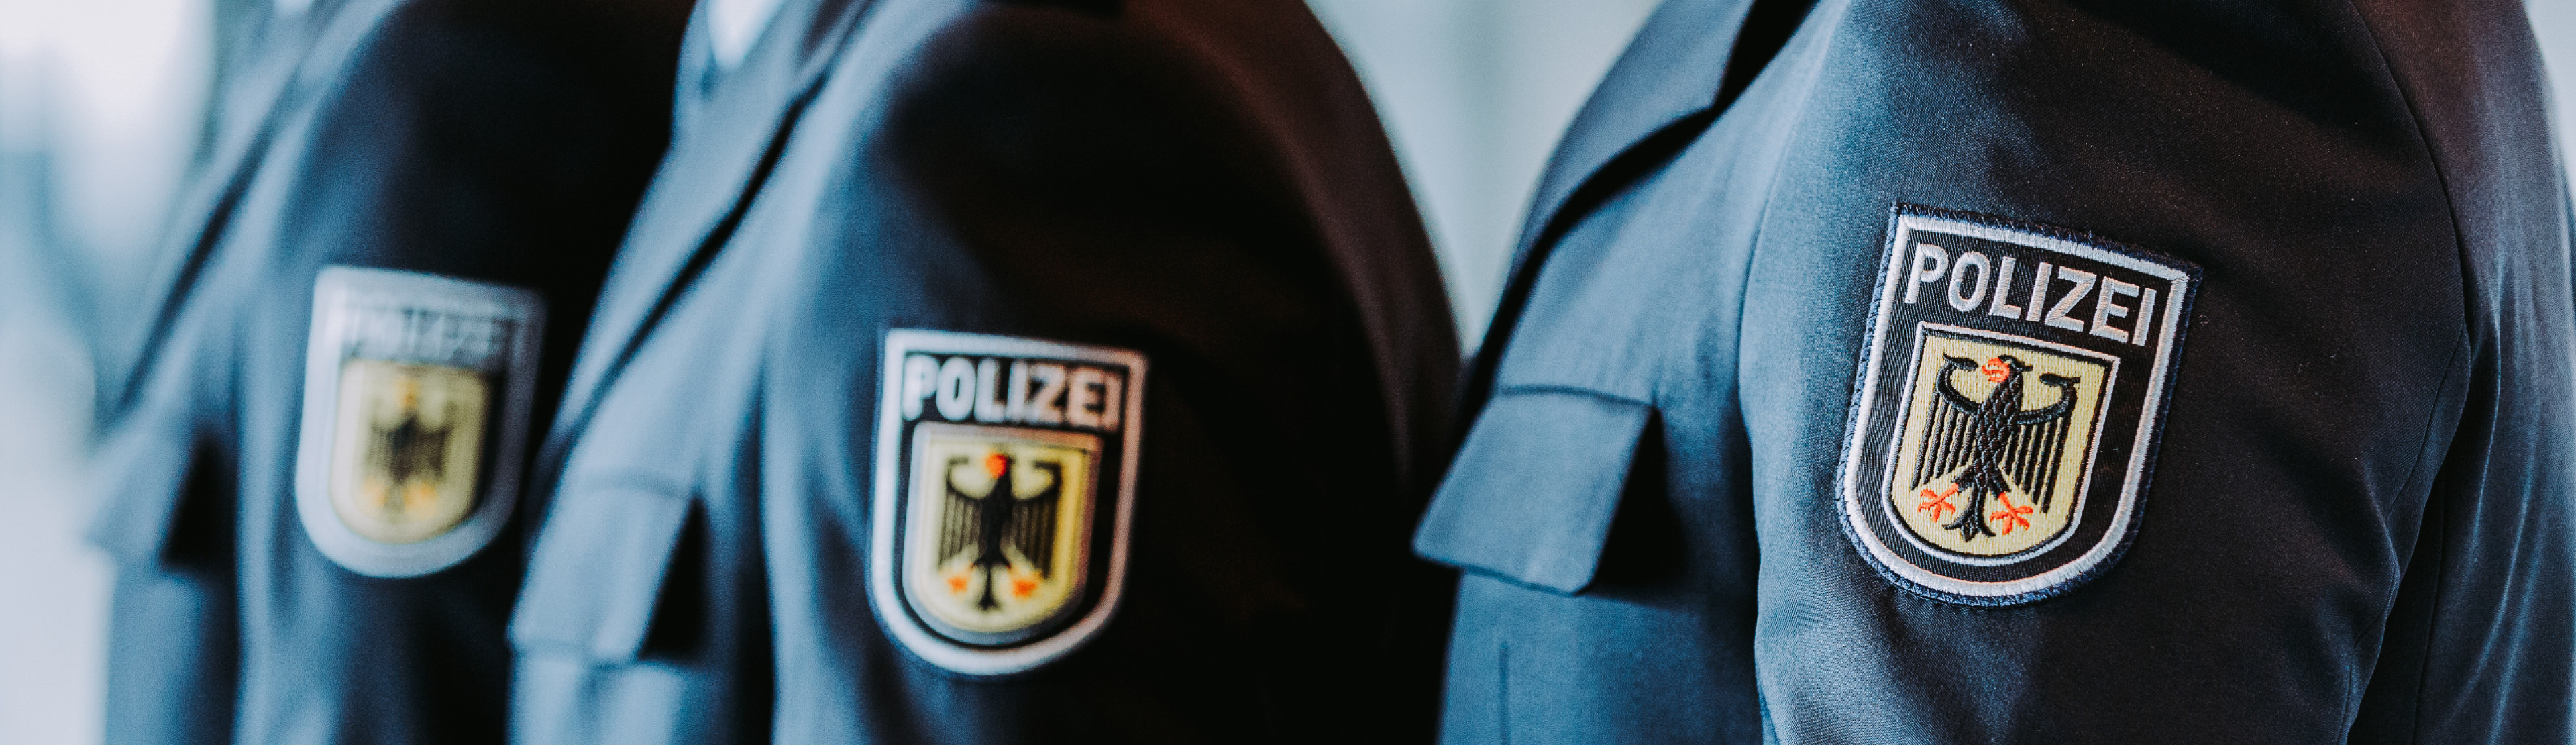 Bundespolizei_Karriere